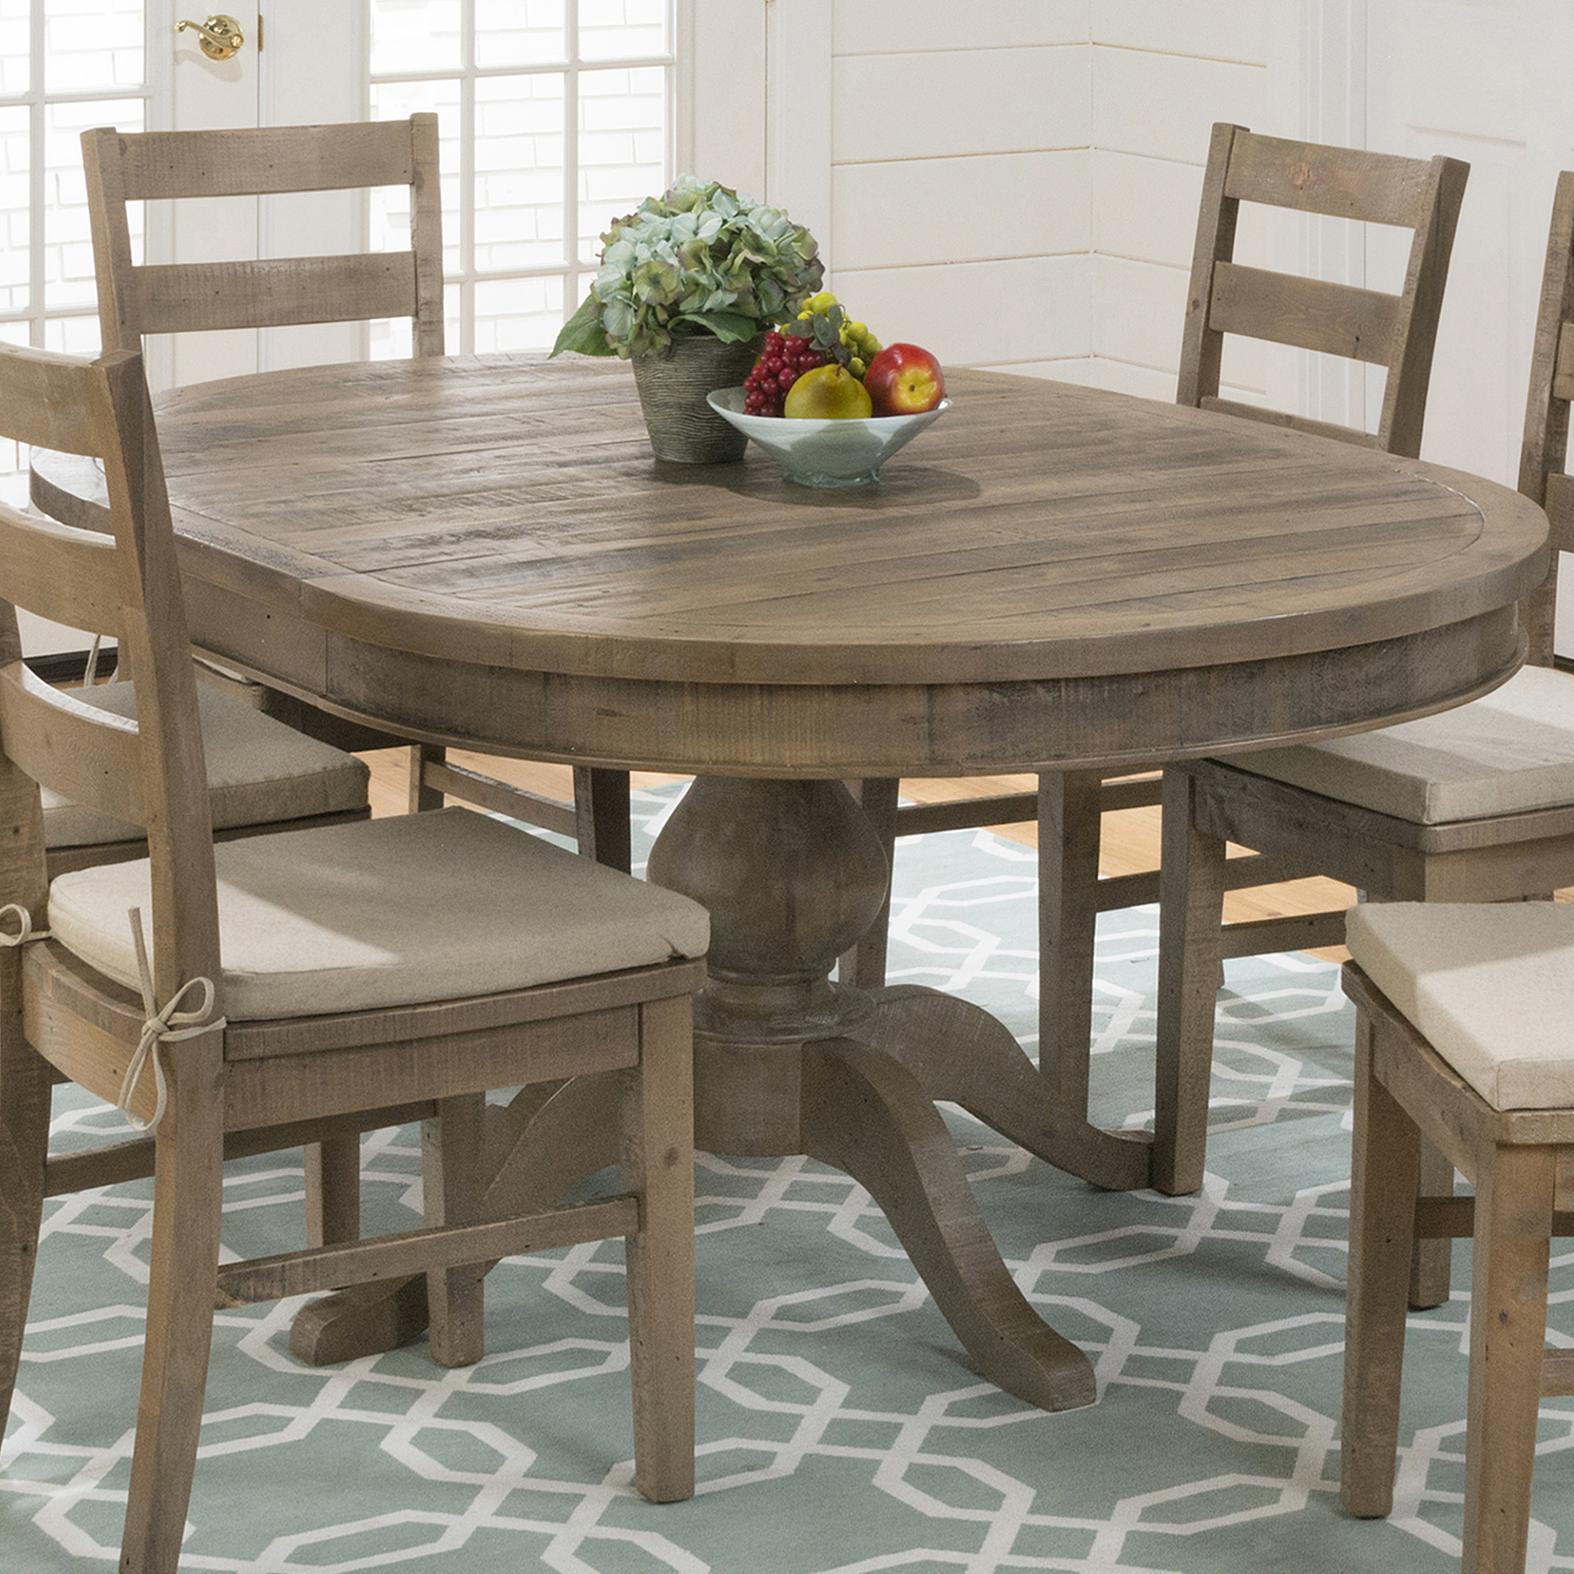 Best ideas about Oval Dining Table . Save or Pin Viking dining table dining tables cabin tables lodge fine Now.